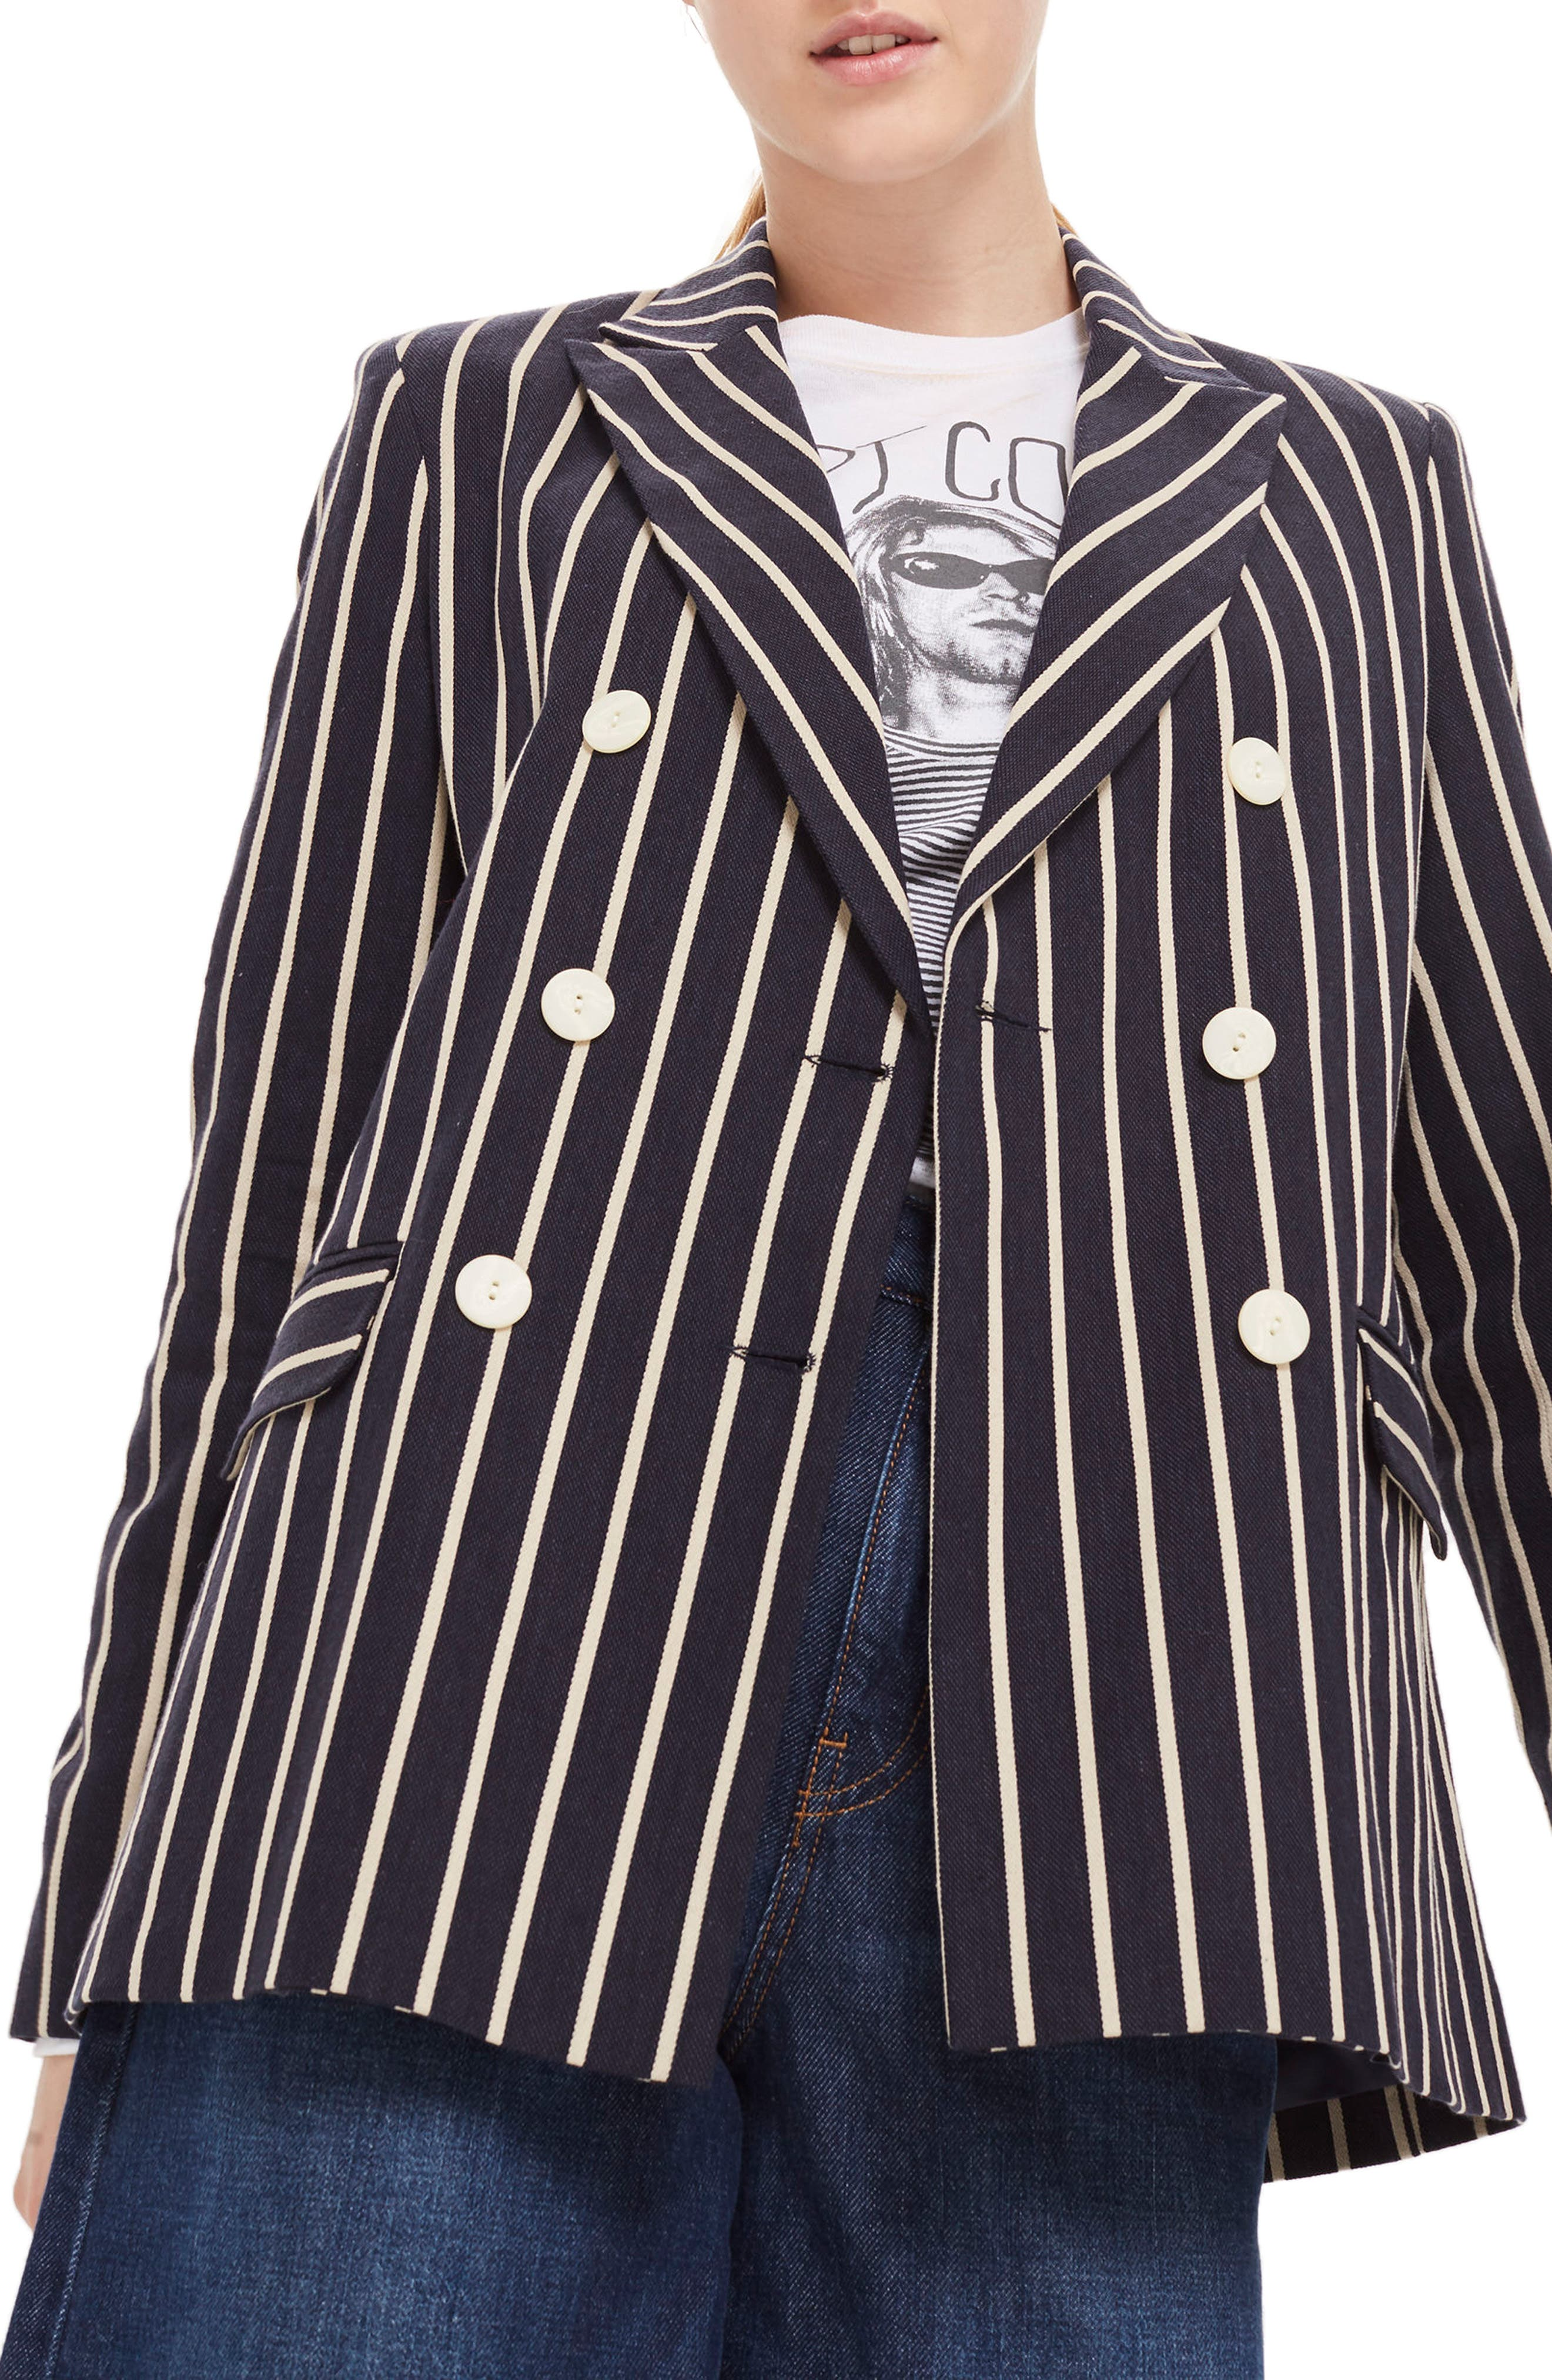 Alternate Image 1 Selected - Topshop Stripe Double Breasted Jacket